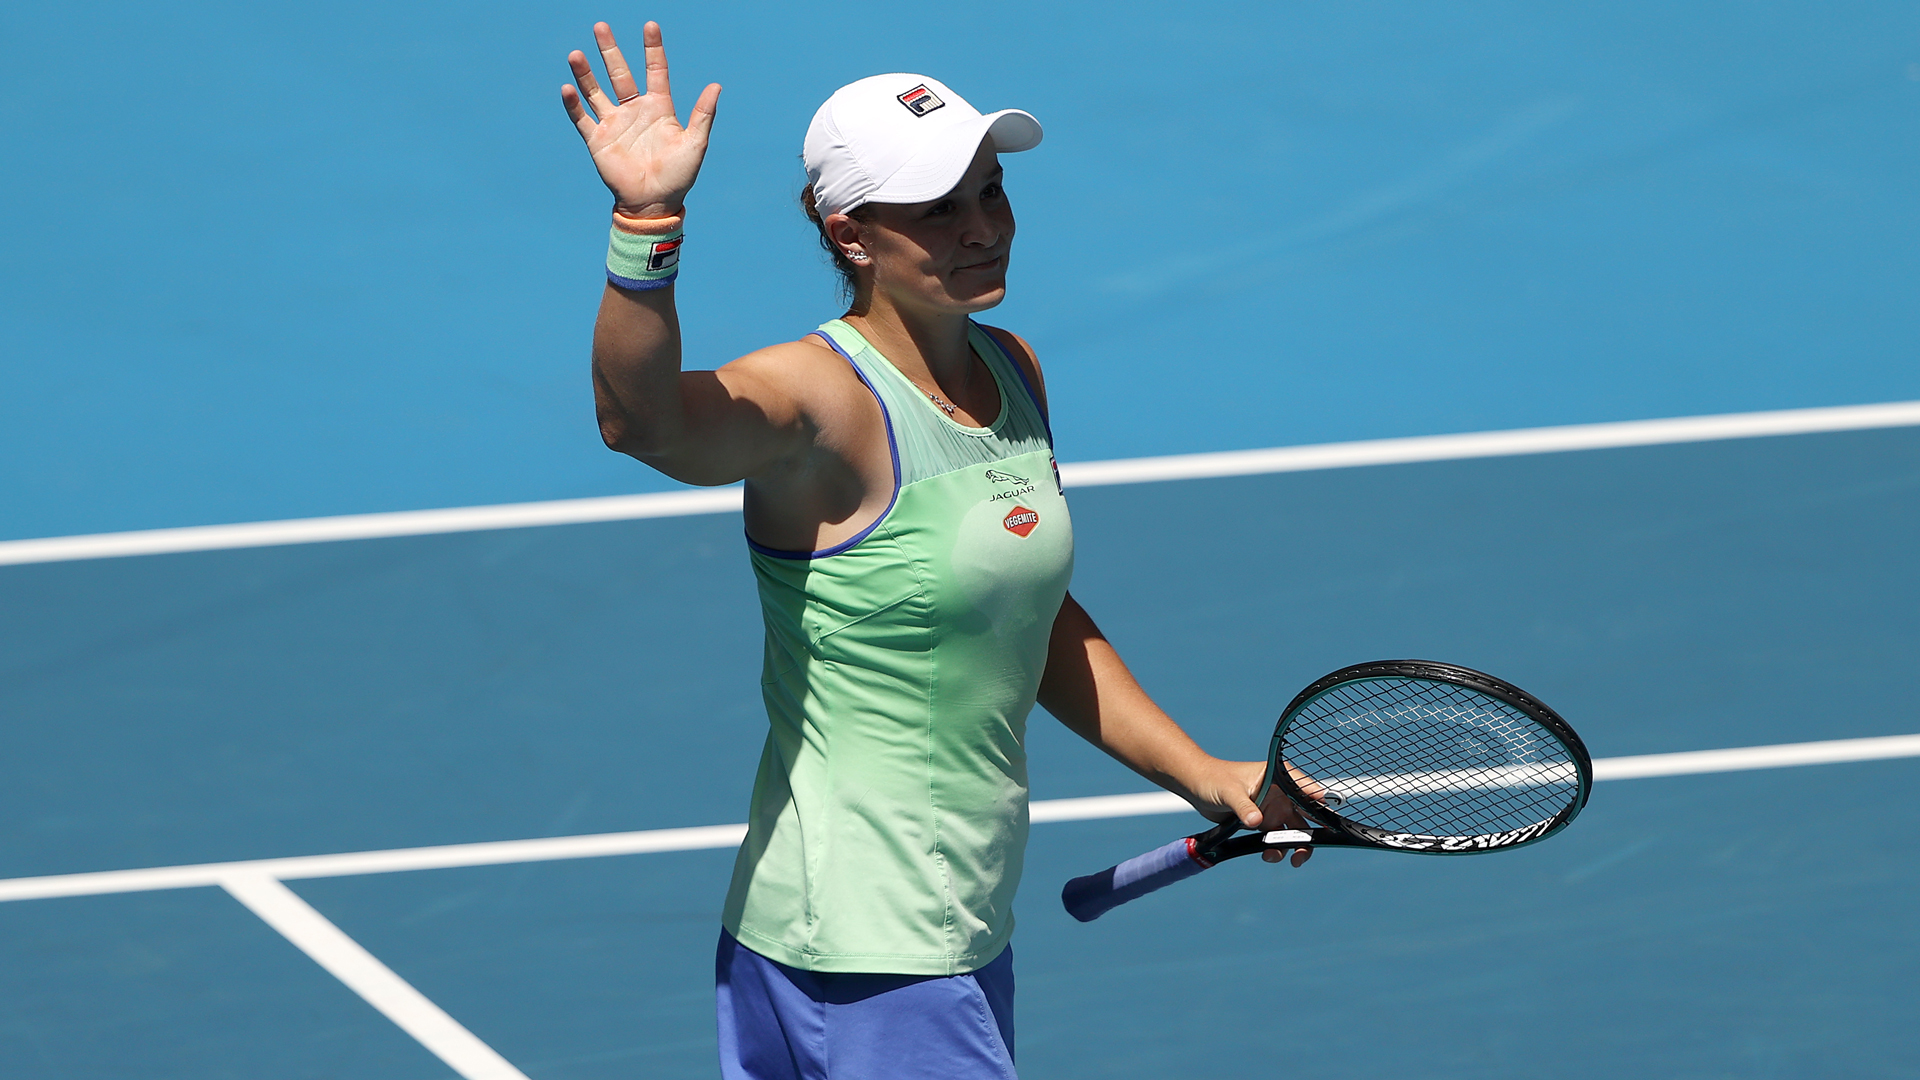 Australian Open 2020: Barty excited but ignoring the hype